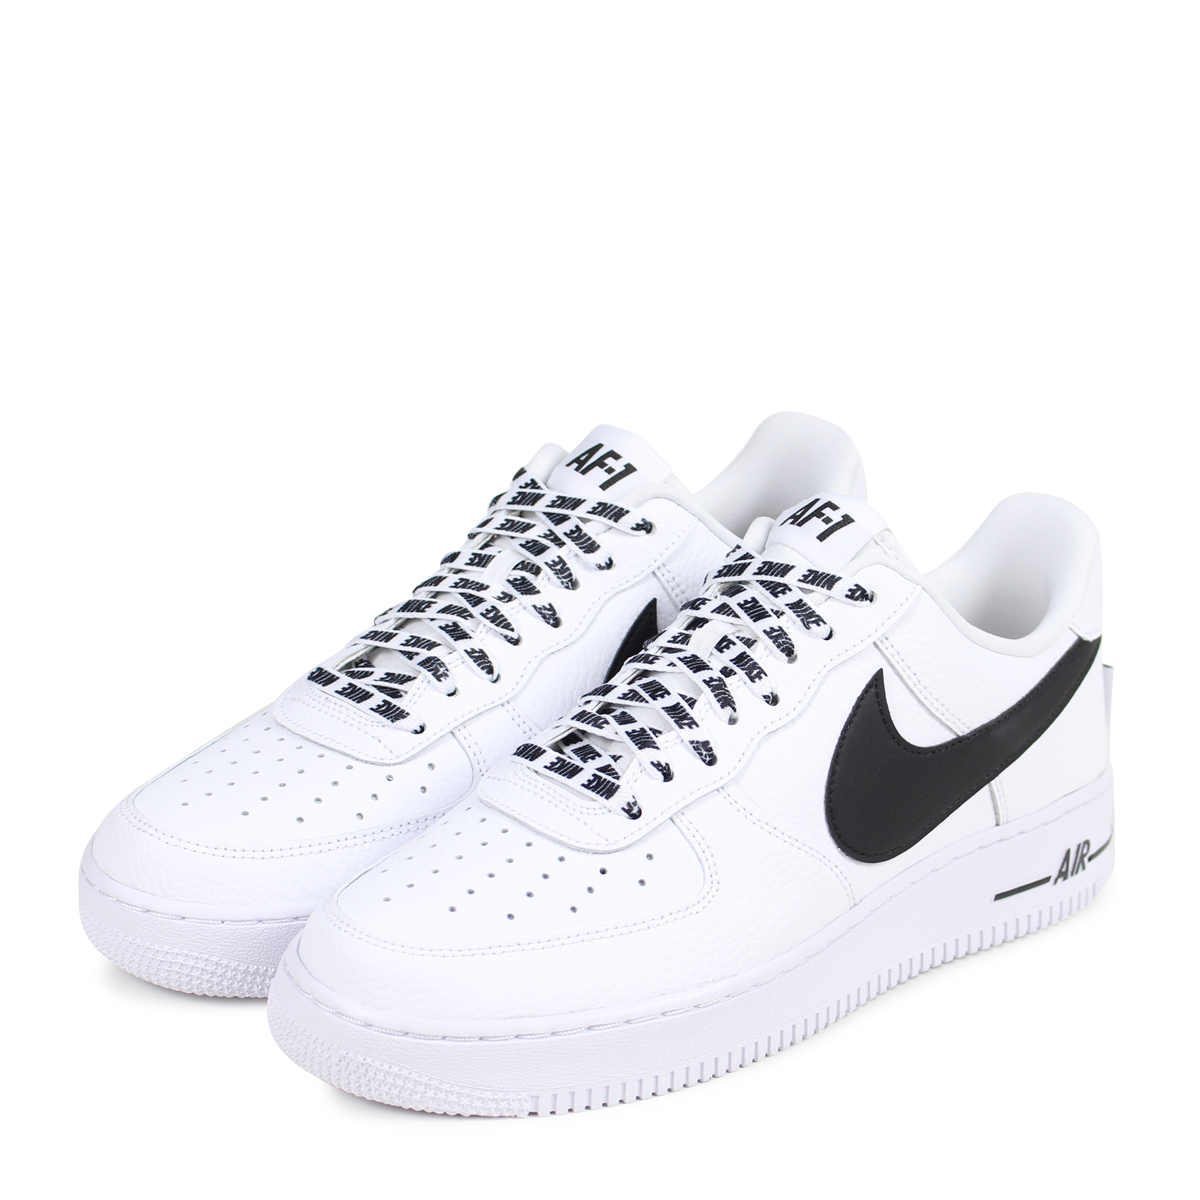 NIKE AIR FORCE 1 STATEMENT GAME Nike air force 1 07 LV8 sneakers men  823,511-103 white [3/15 Shinnyu load] [183]